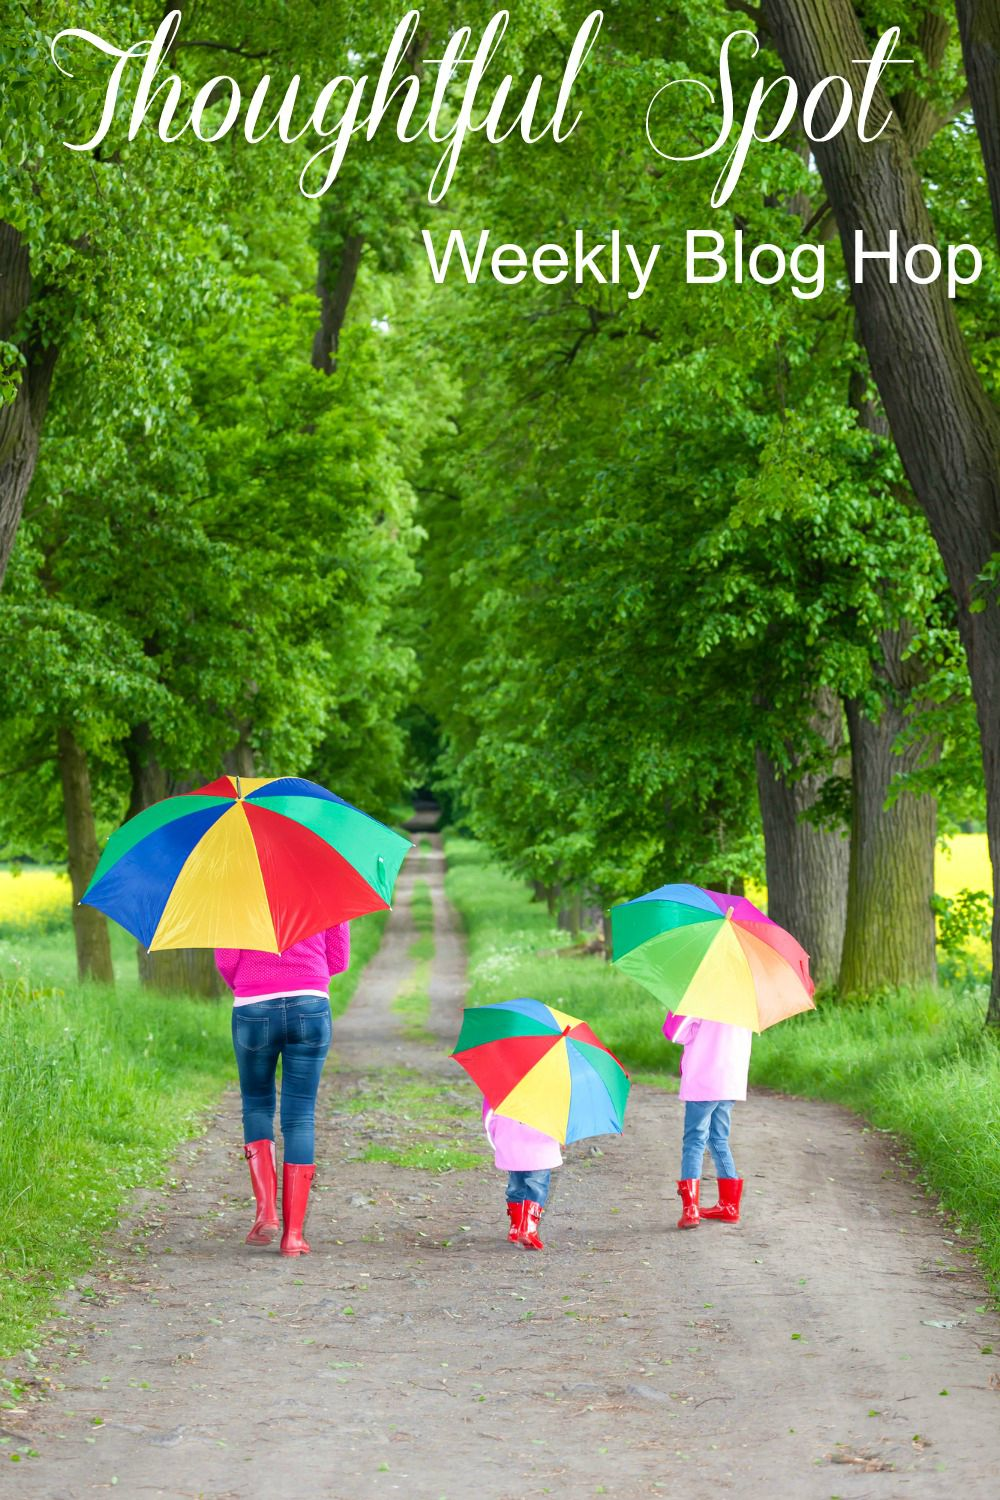 Thoughtful Spot Weekly Blog Hop where you will find the best family friendly recipes, crafts, DIY's, Homeschooling Ideas and Parenting Advice